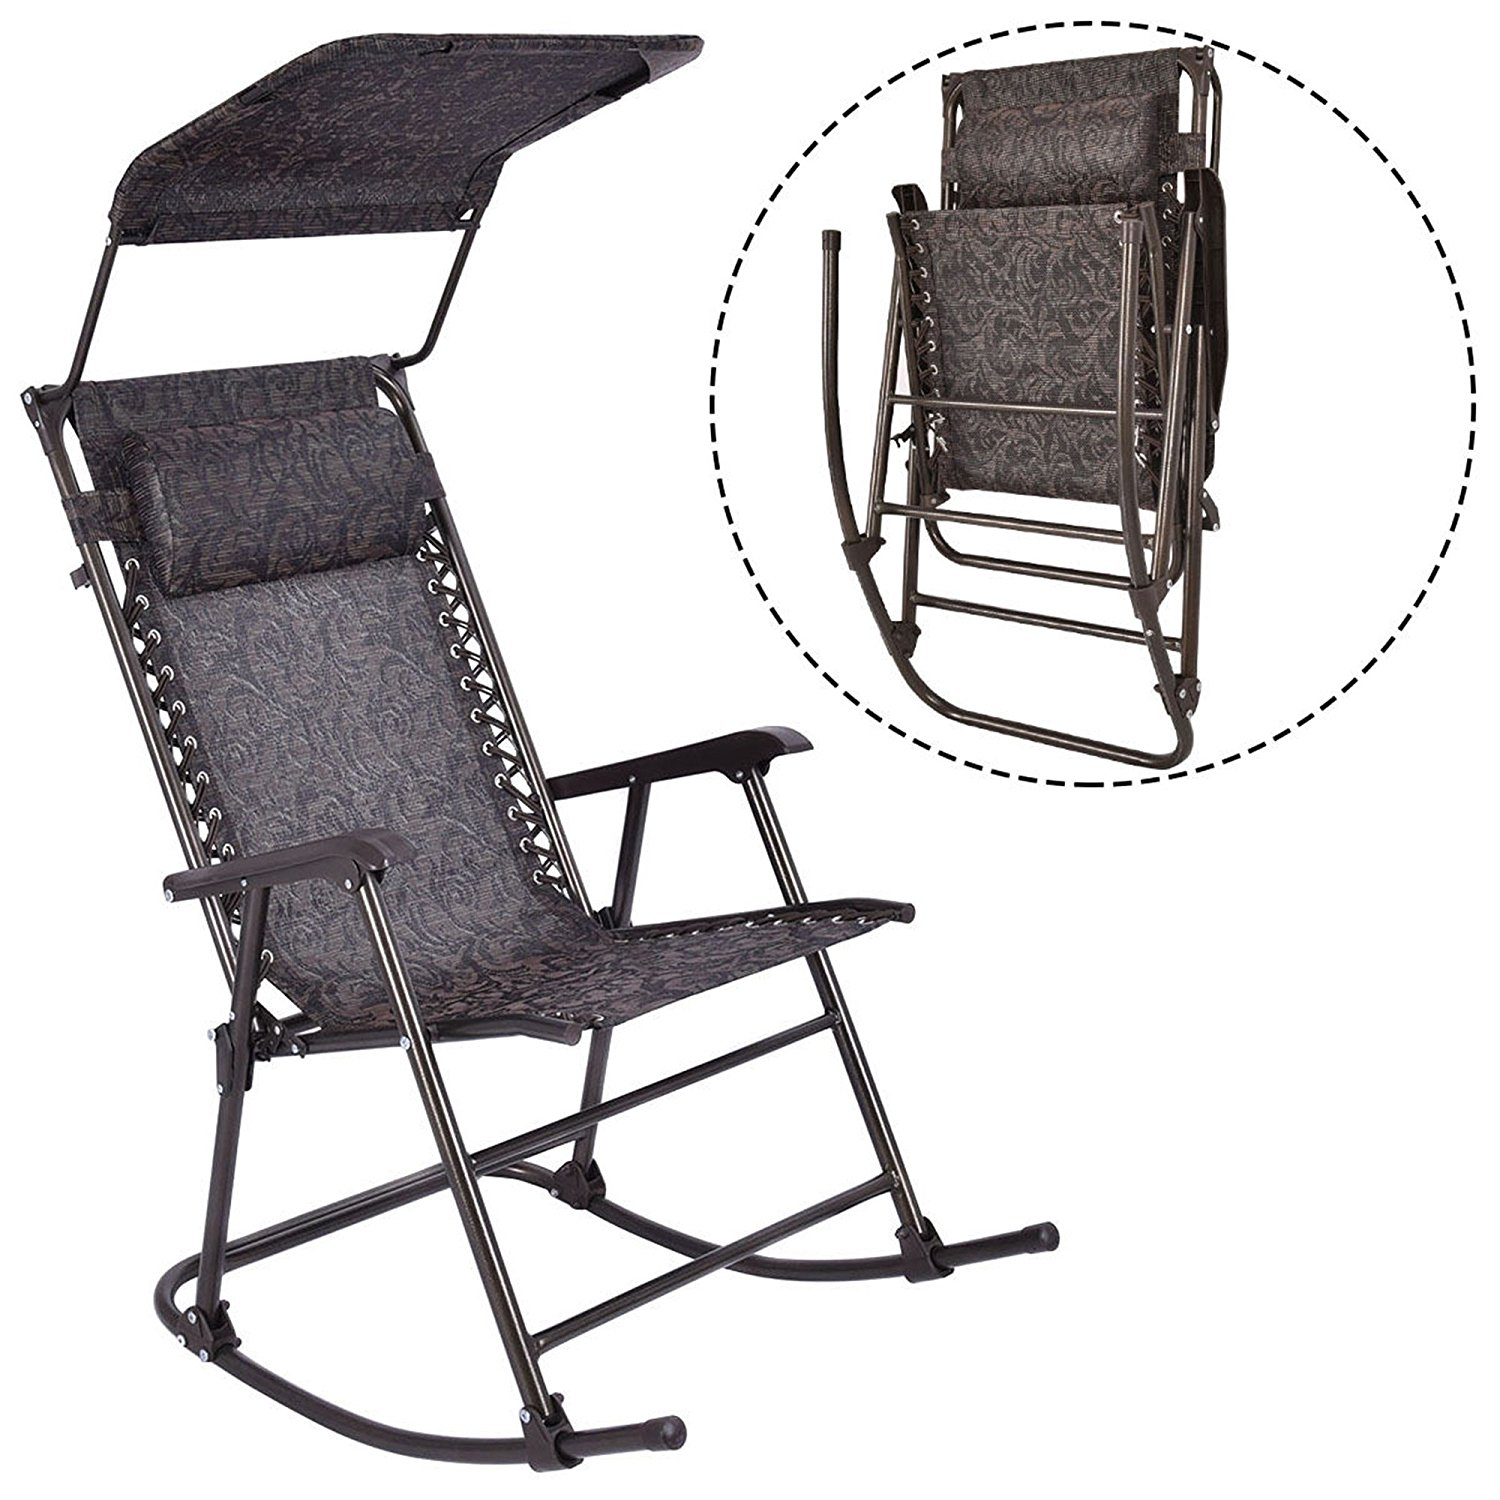 LTL Shop Folding Rocking Chair Porch Patio Indoor Rocker With Canopy U0026  Headrest